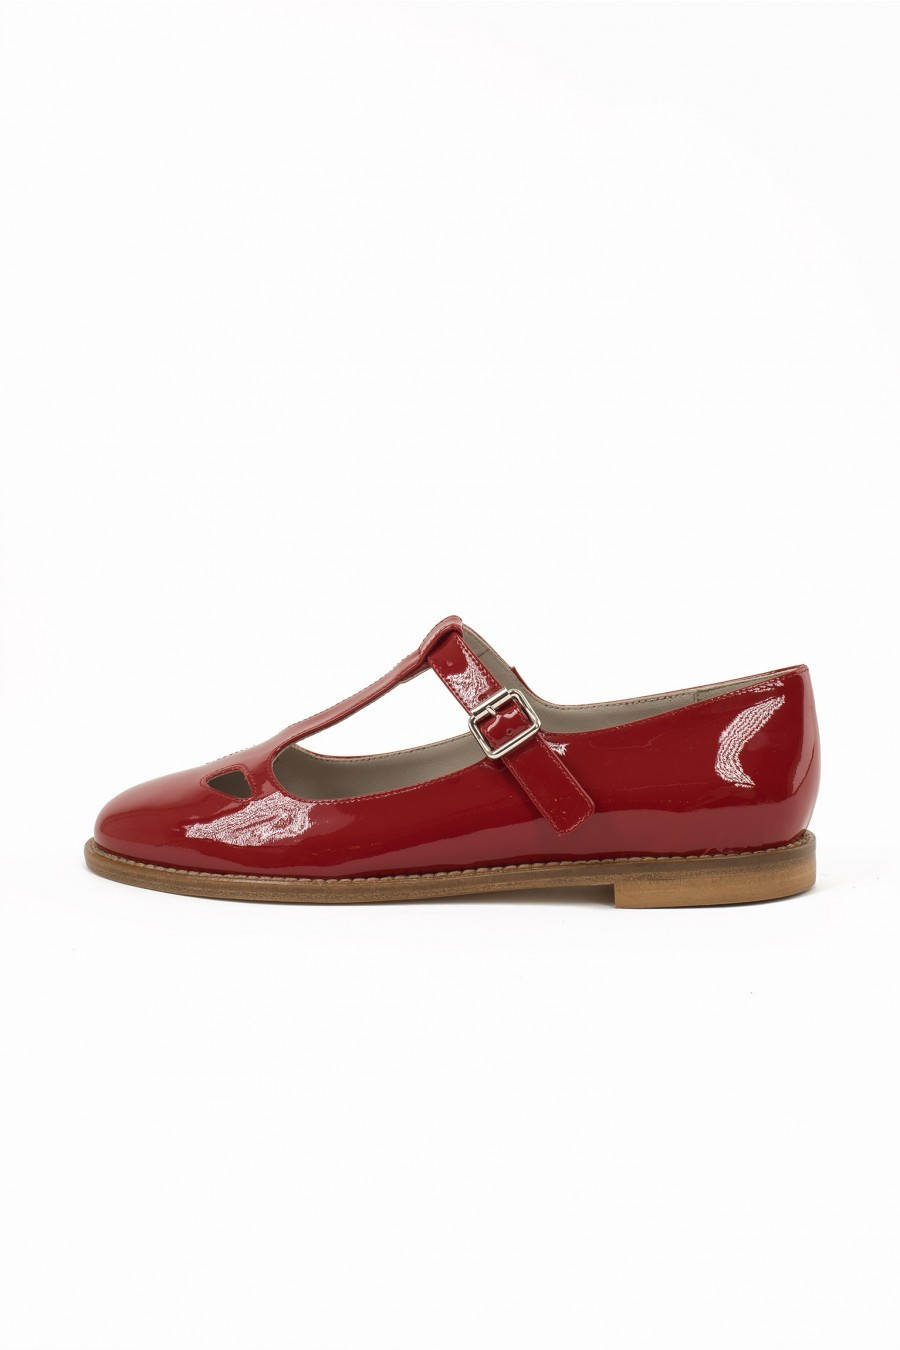 patent leather flat ballerina Lazzari